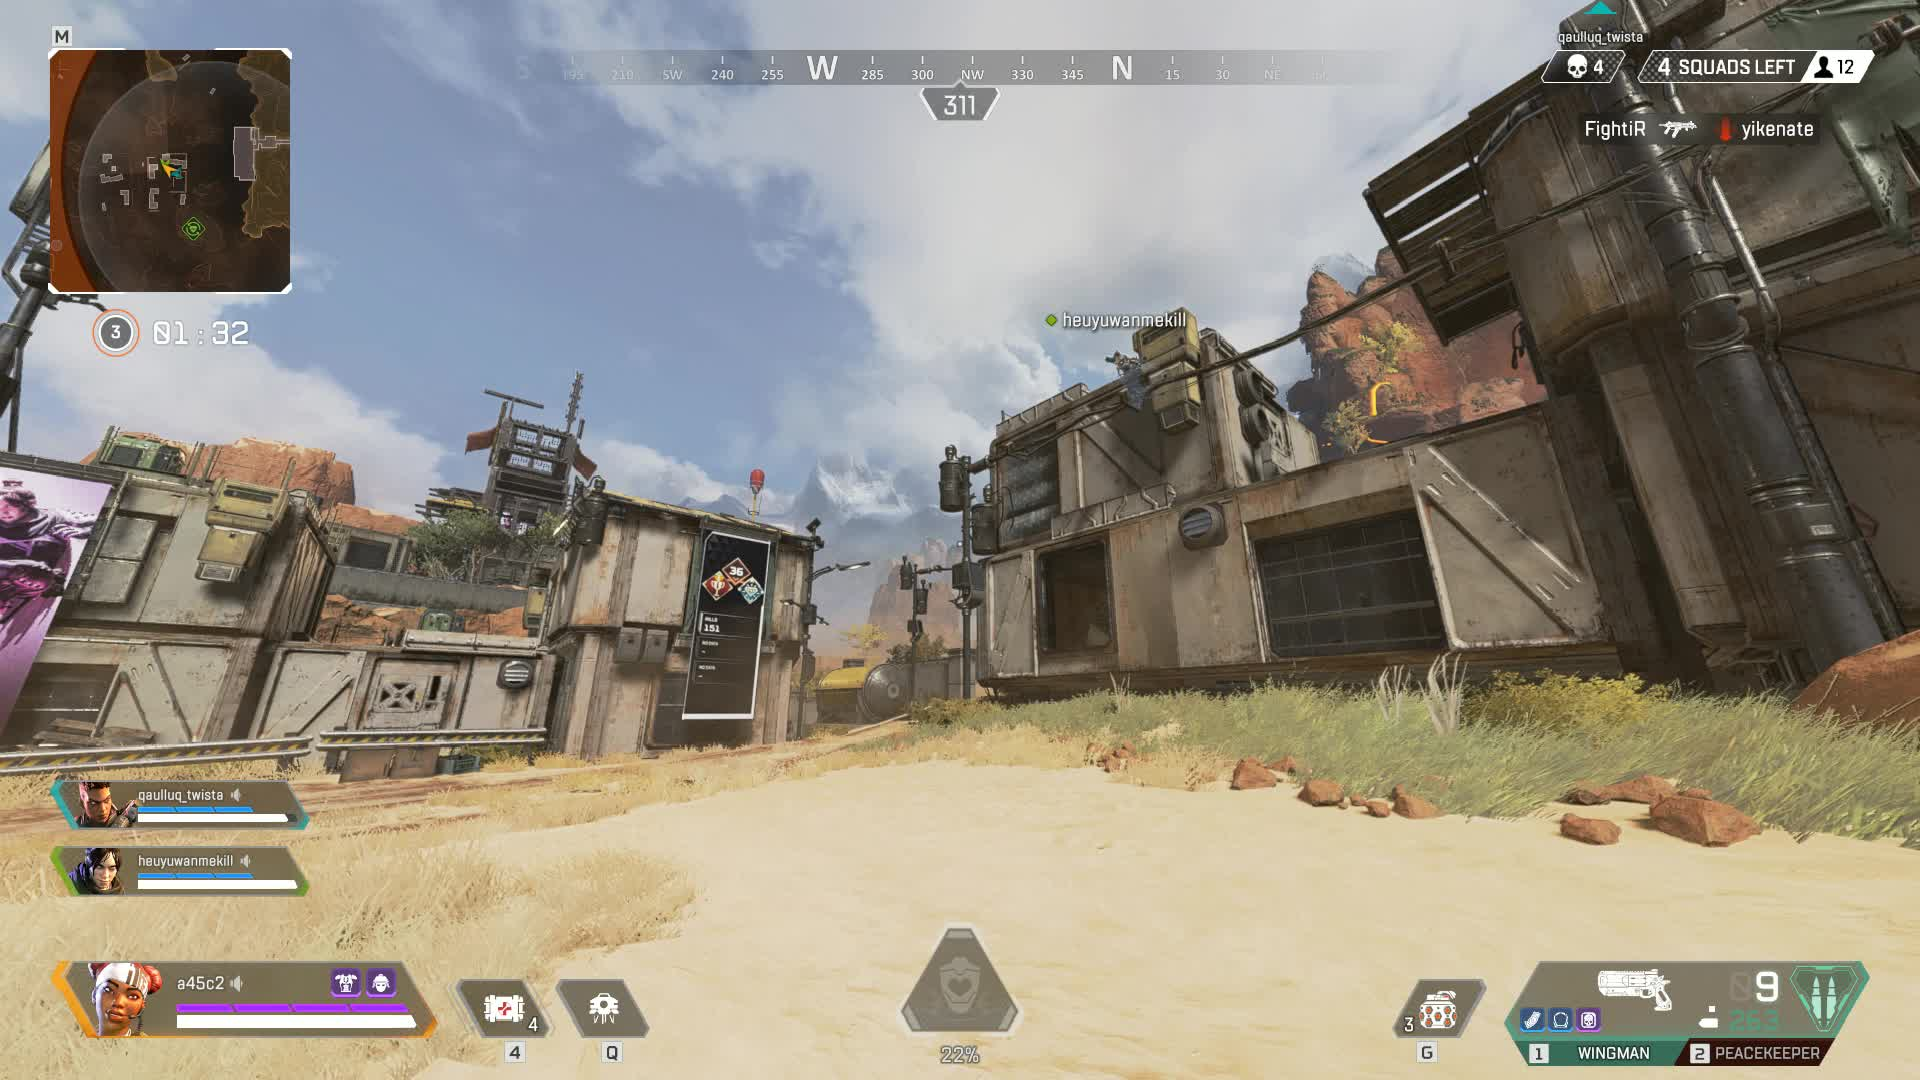 apexlegends, Apex Legends 2019.02.15 - 16.29.37.09 GIFs